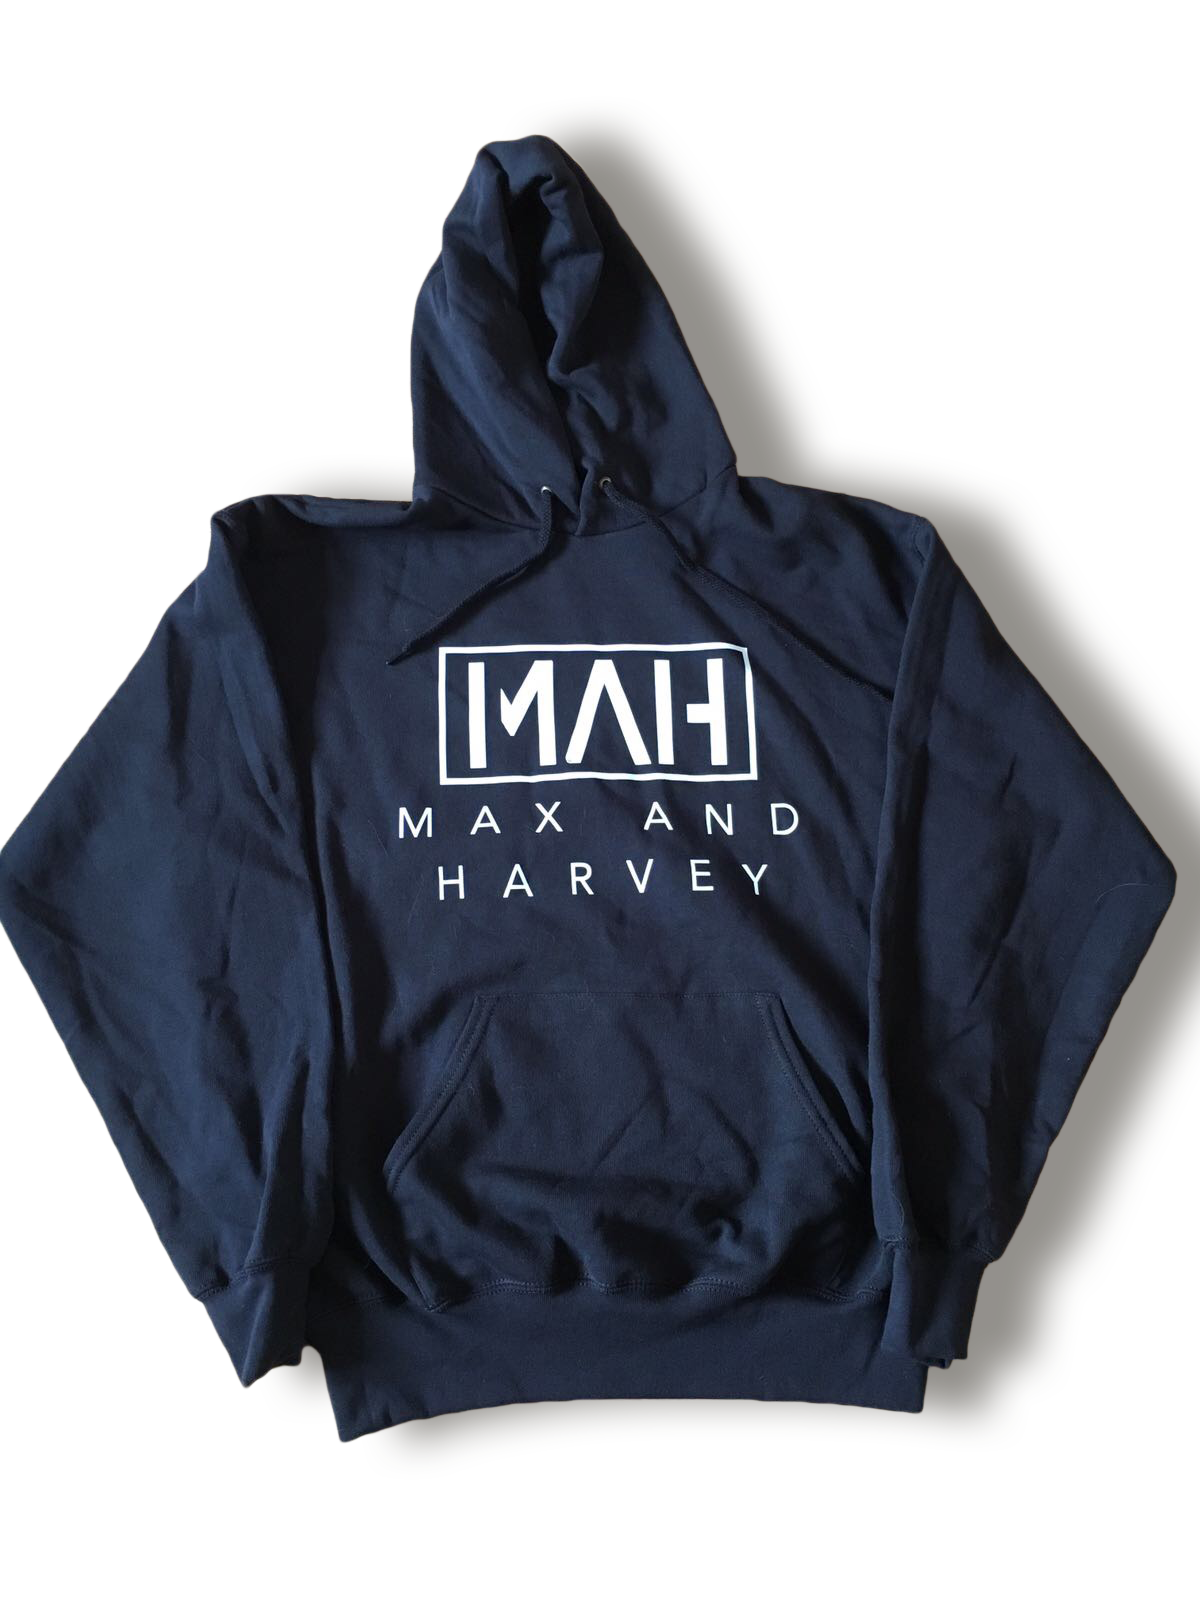 Go and buy it on maxandharvey.com can't wait to get it !! Ahhhhhh ...